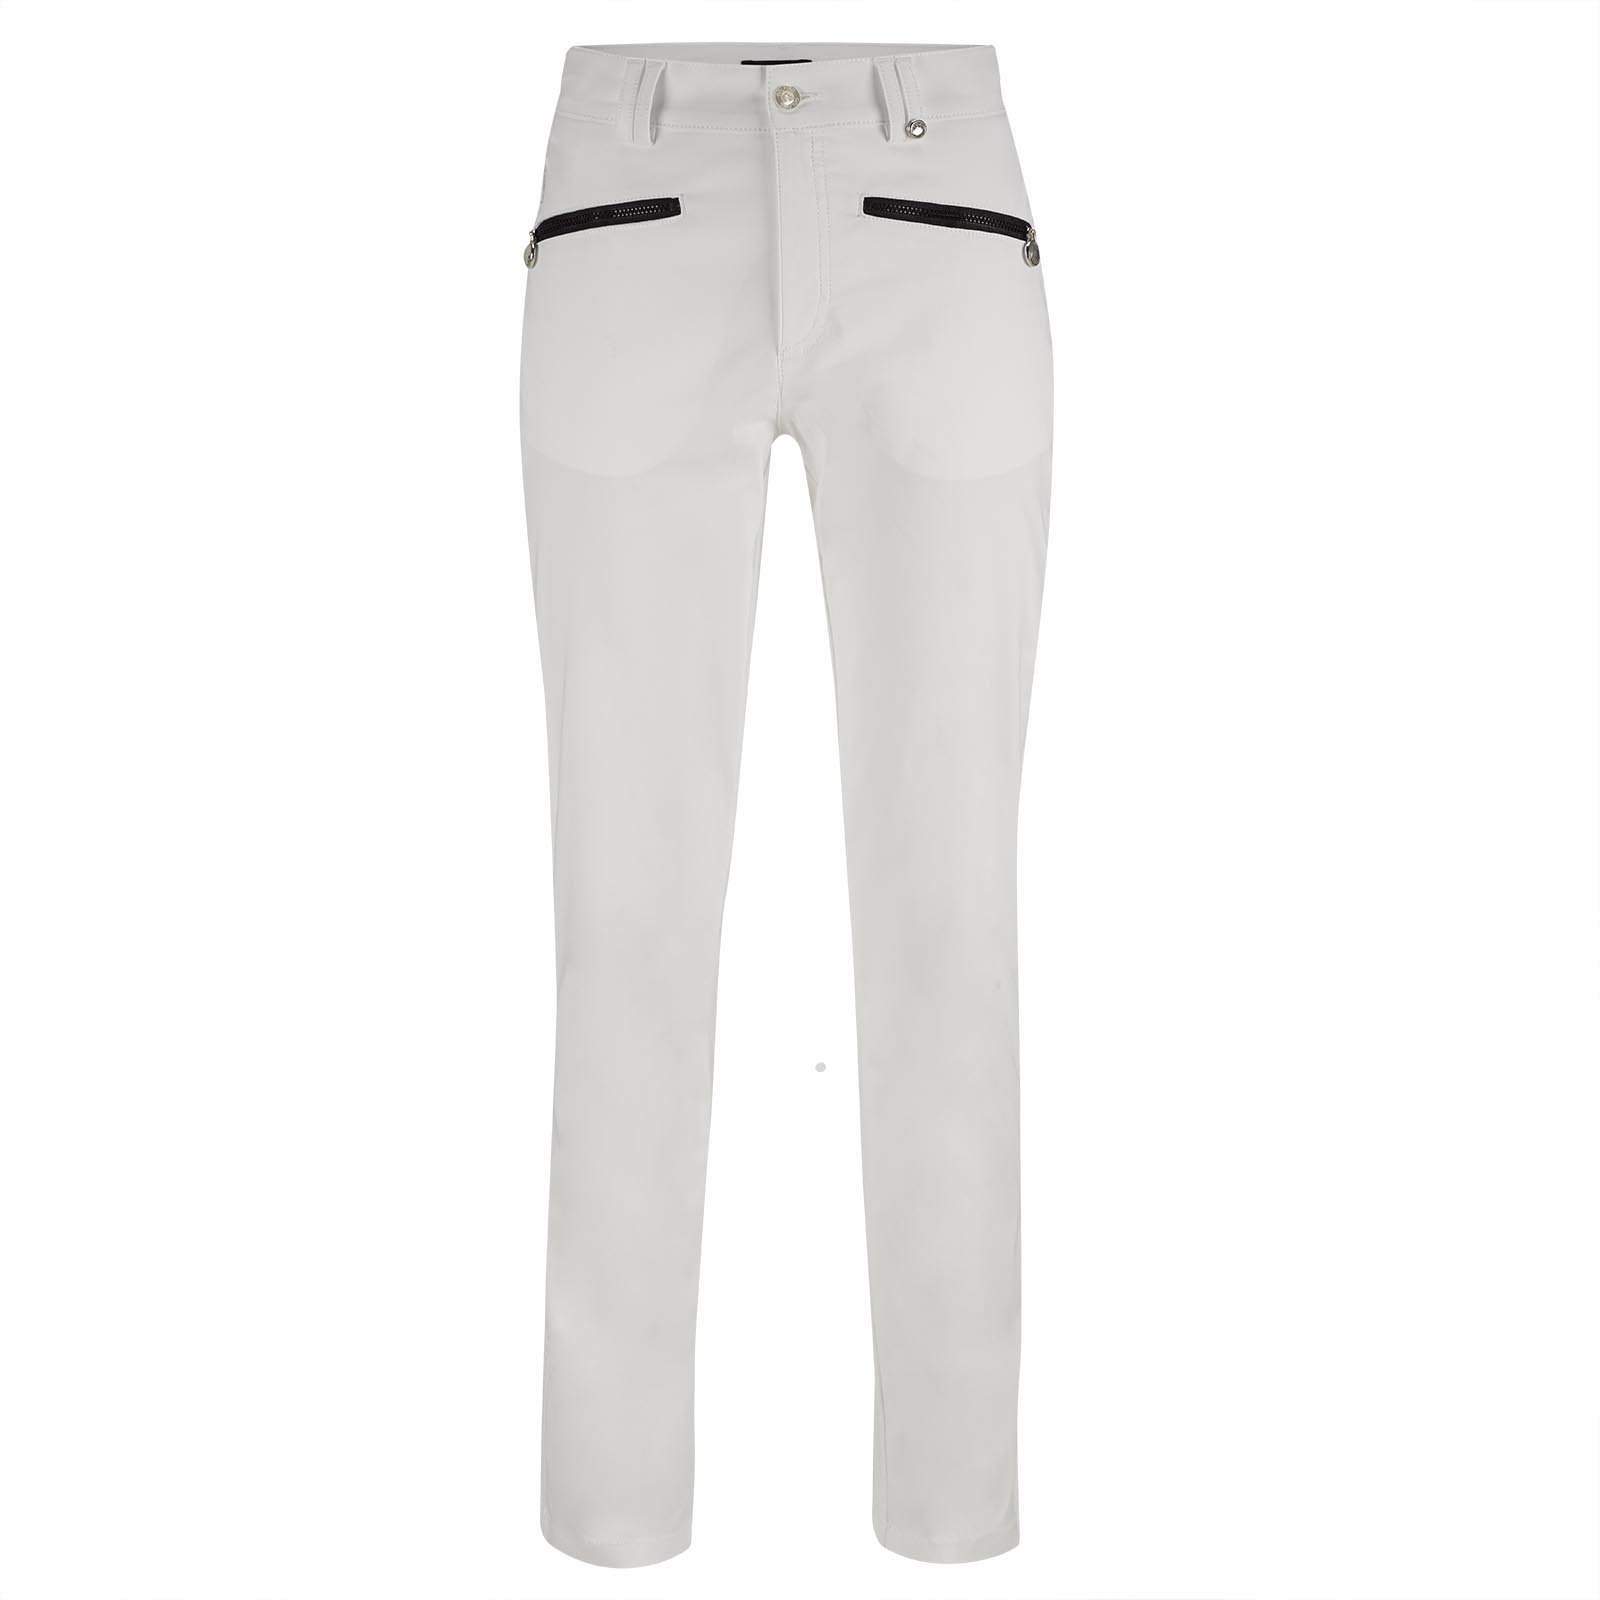 Cotton blend 7/8 ladies' golf trousers with UV protection